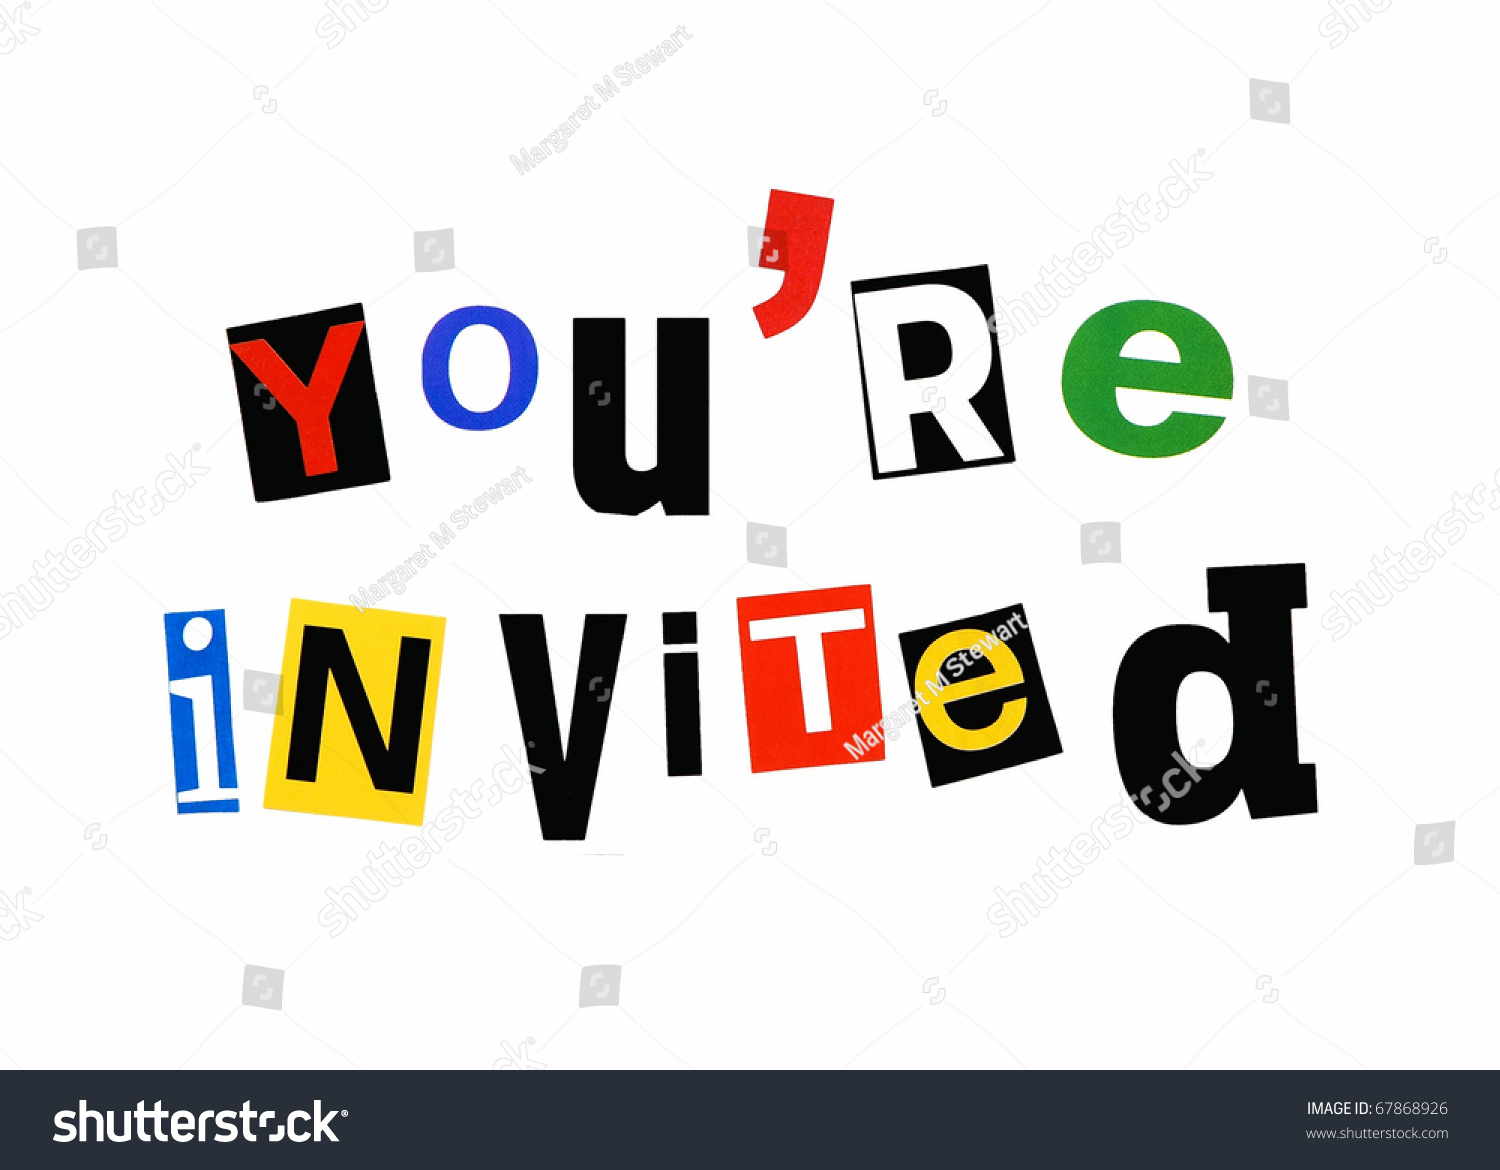 Youre Invited Written Colorful Mix Cutout Stock Photo